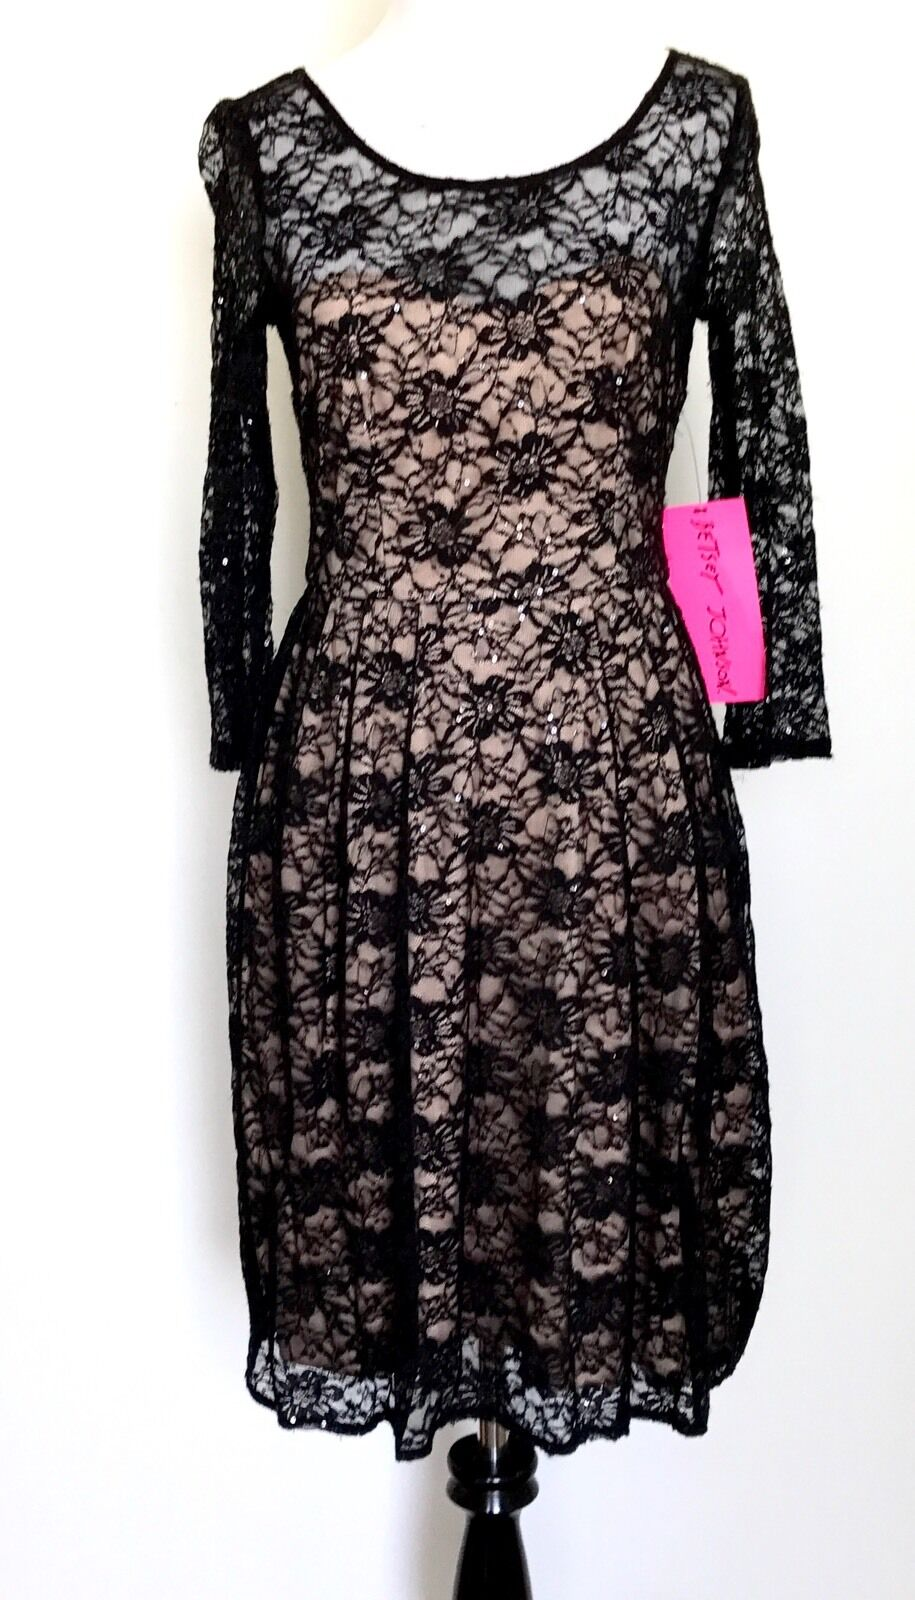 Betsey Johnson Black Lace & Nude Dress. Size 2. Retails $148 Price $54 NWT